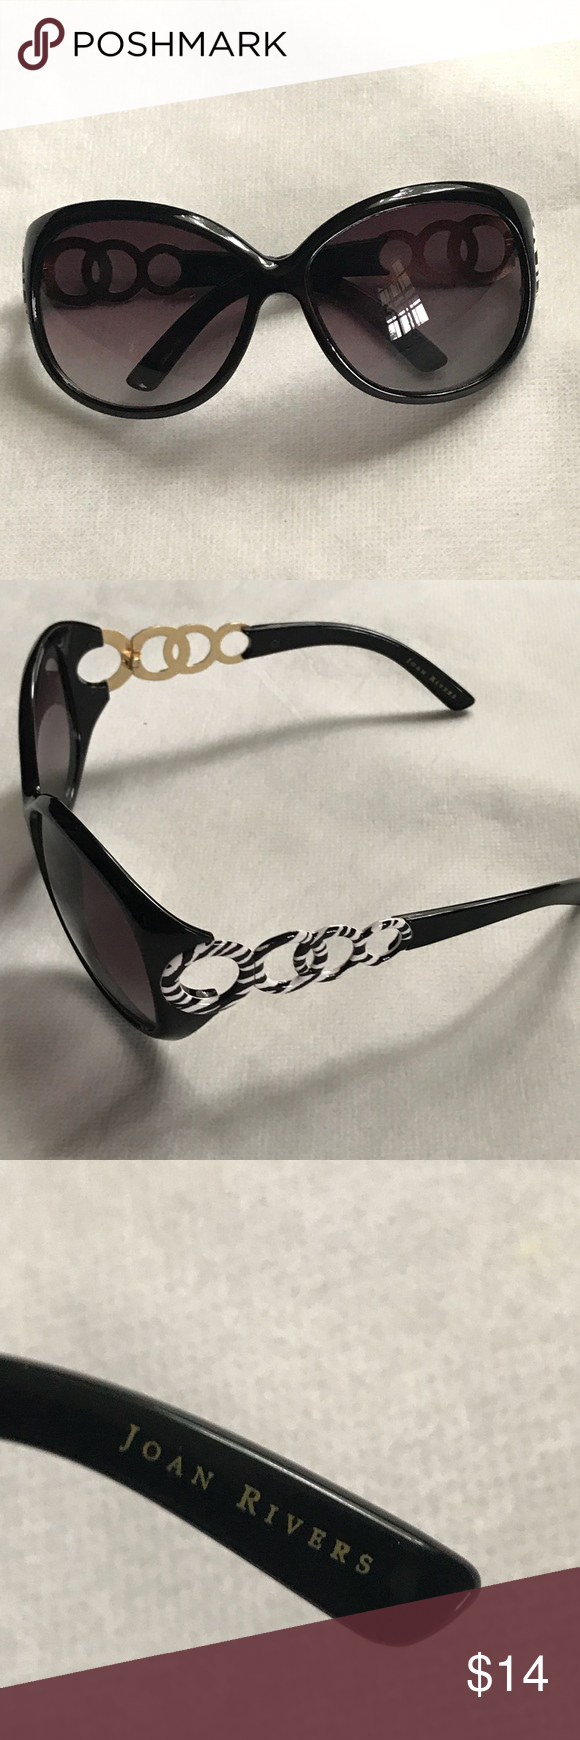 9d0f90449654e Joan River s Sunglasses Black with striped link circles on the side.  Excellent Condition Joan Rivers Accessories Sunglasses